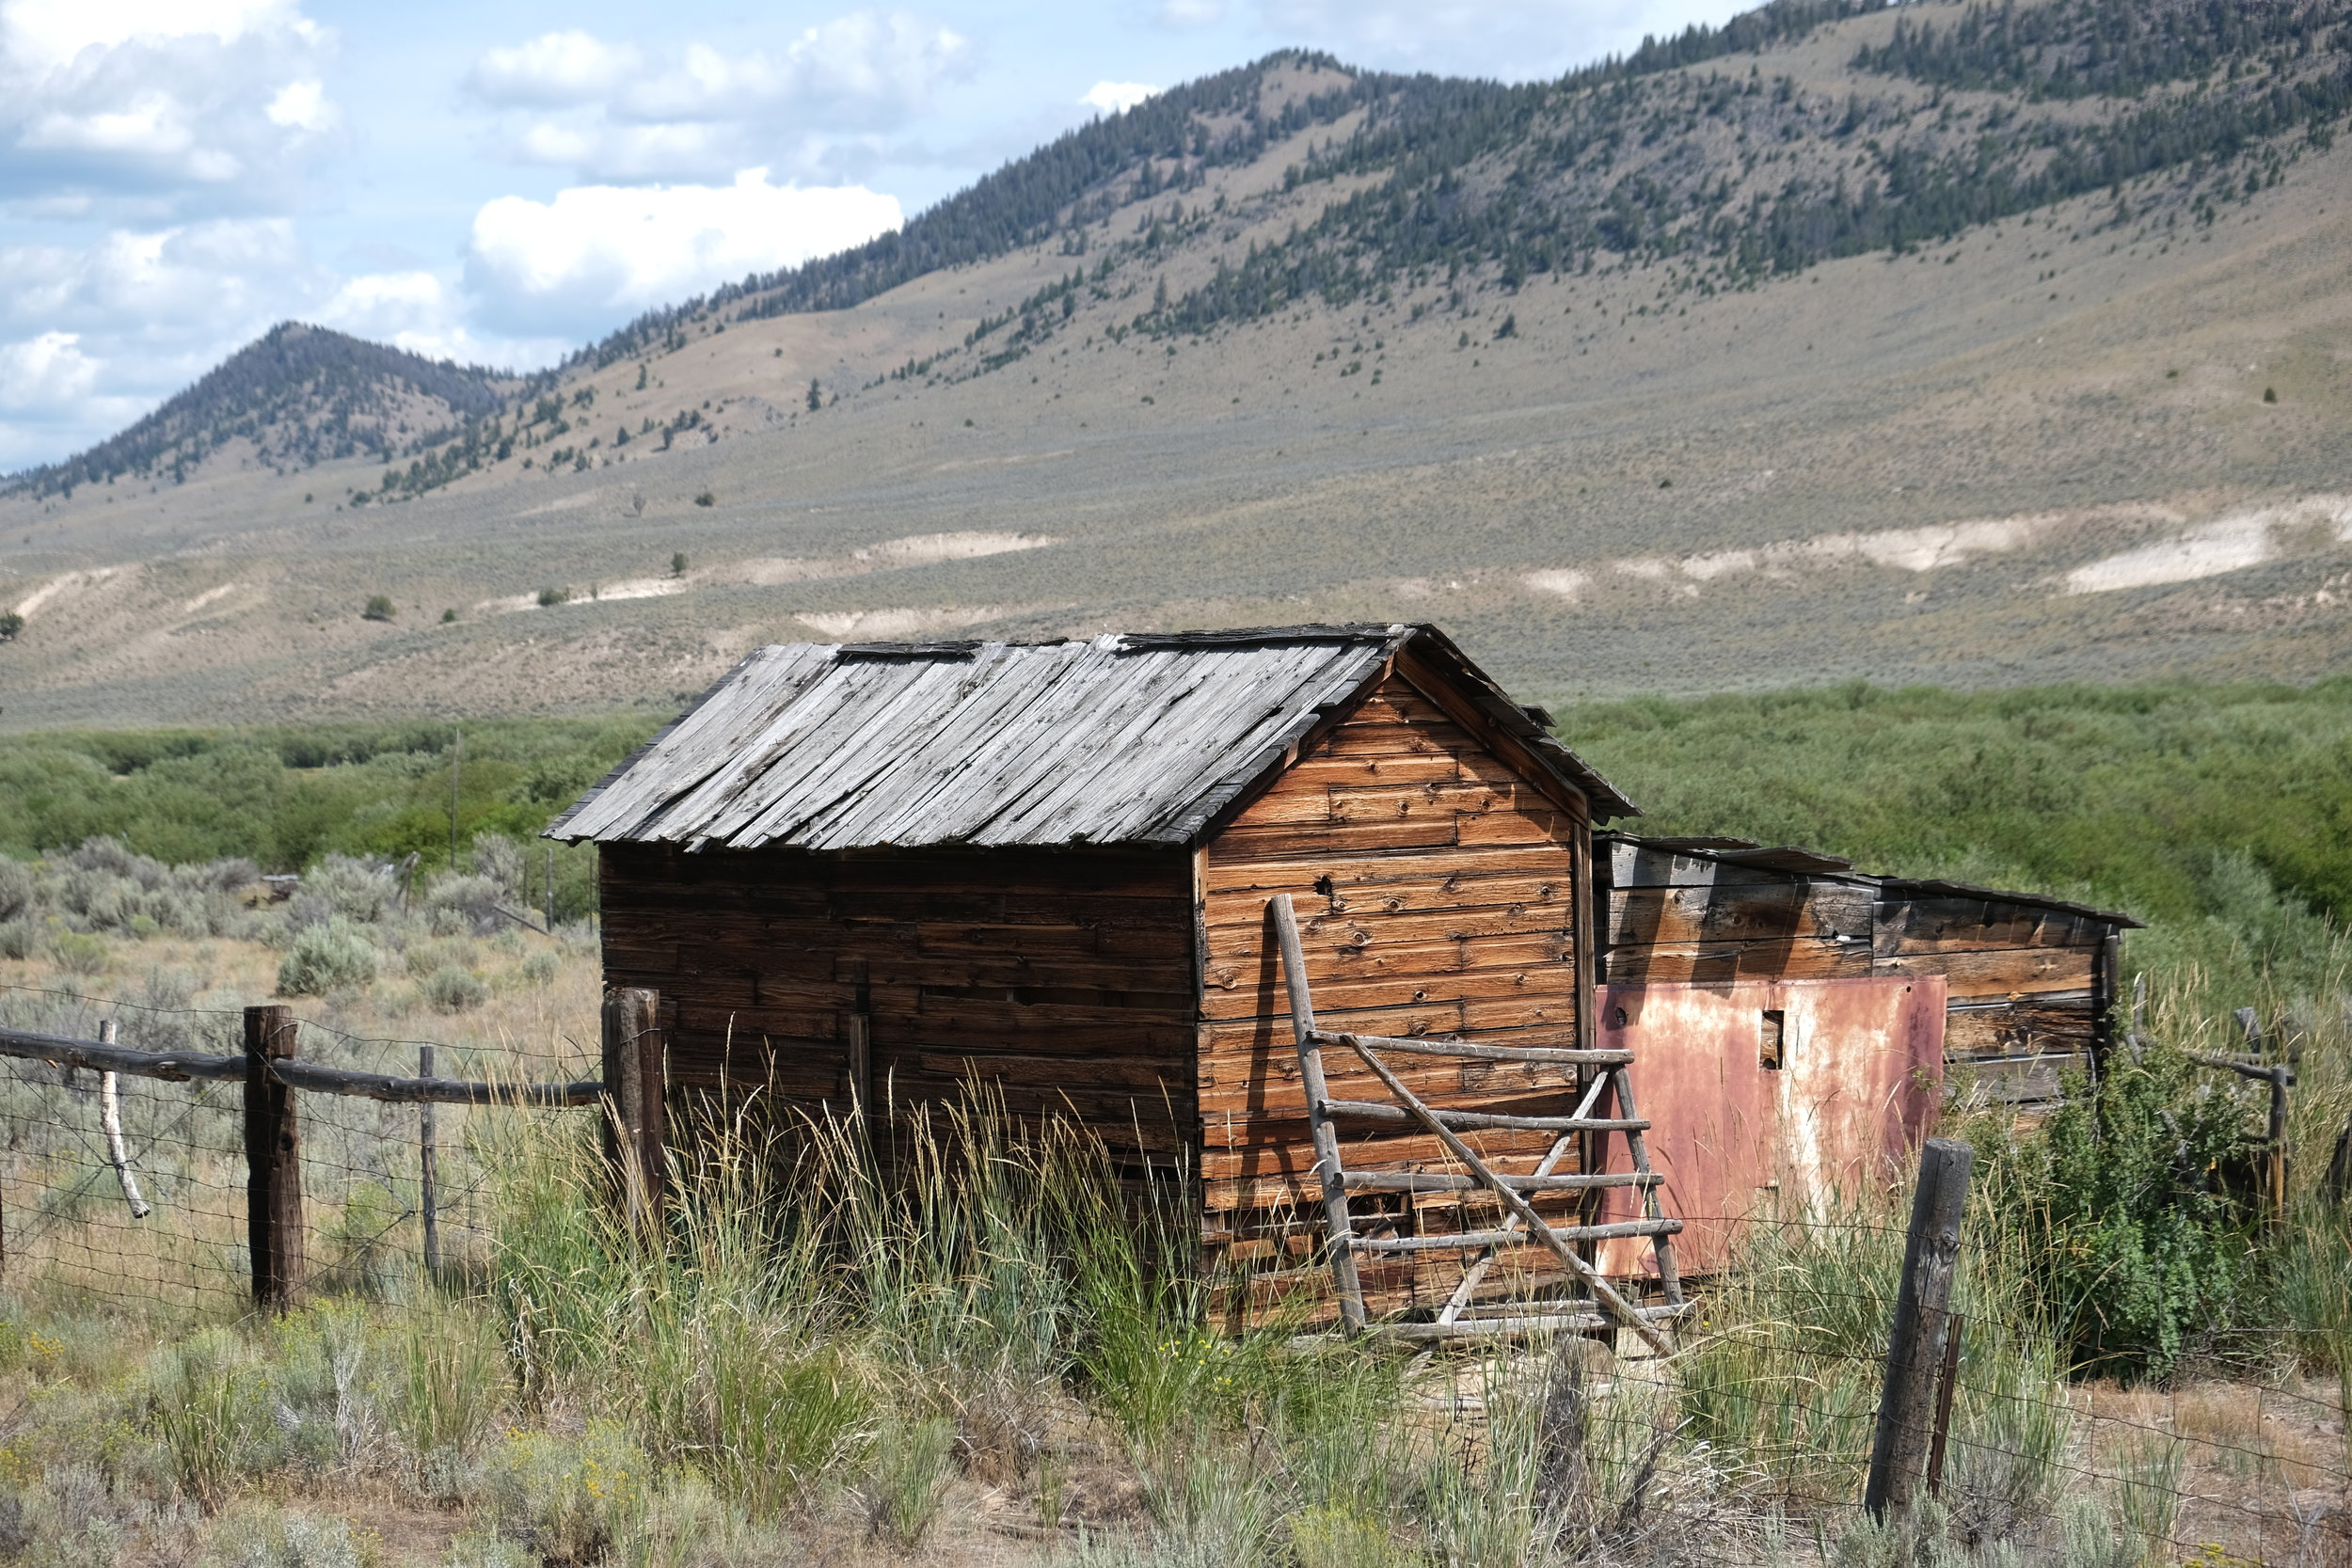 this photograph is a photograph of a hut